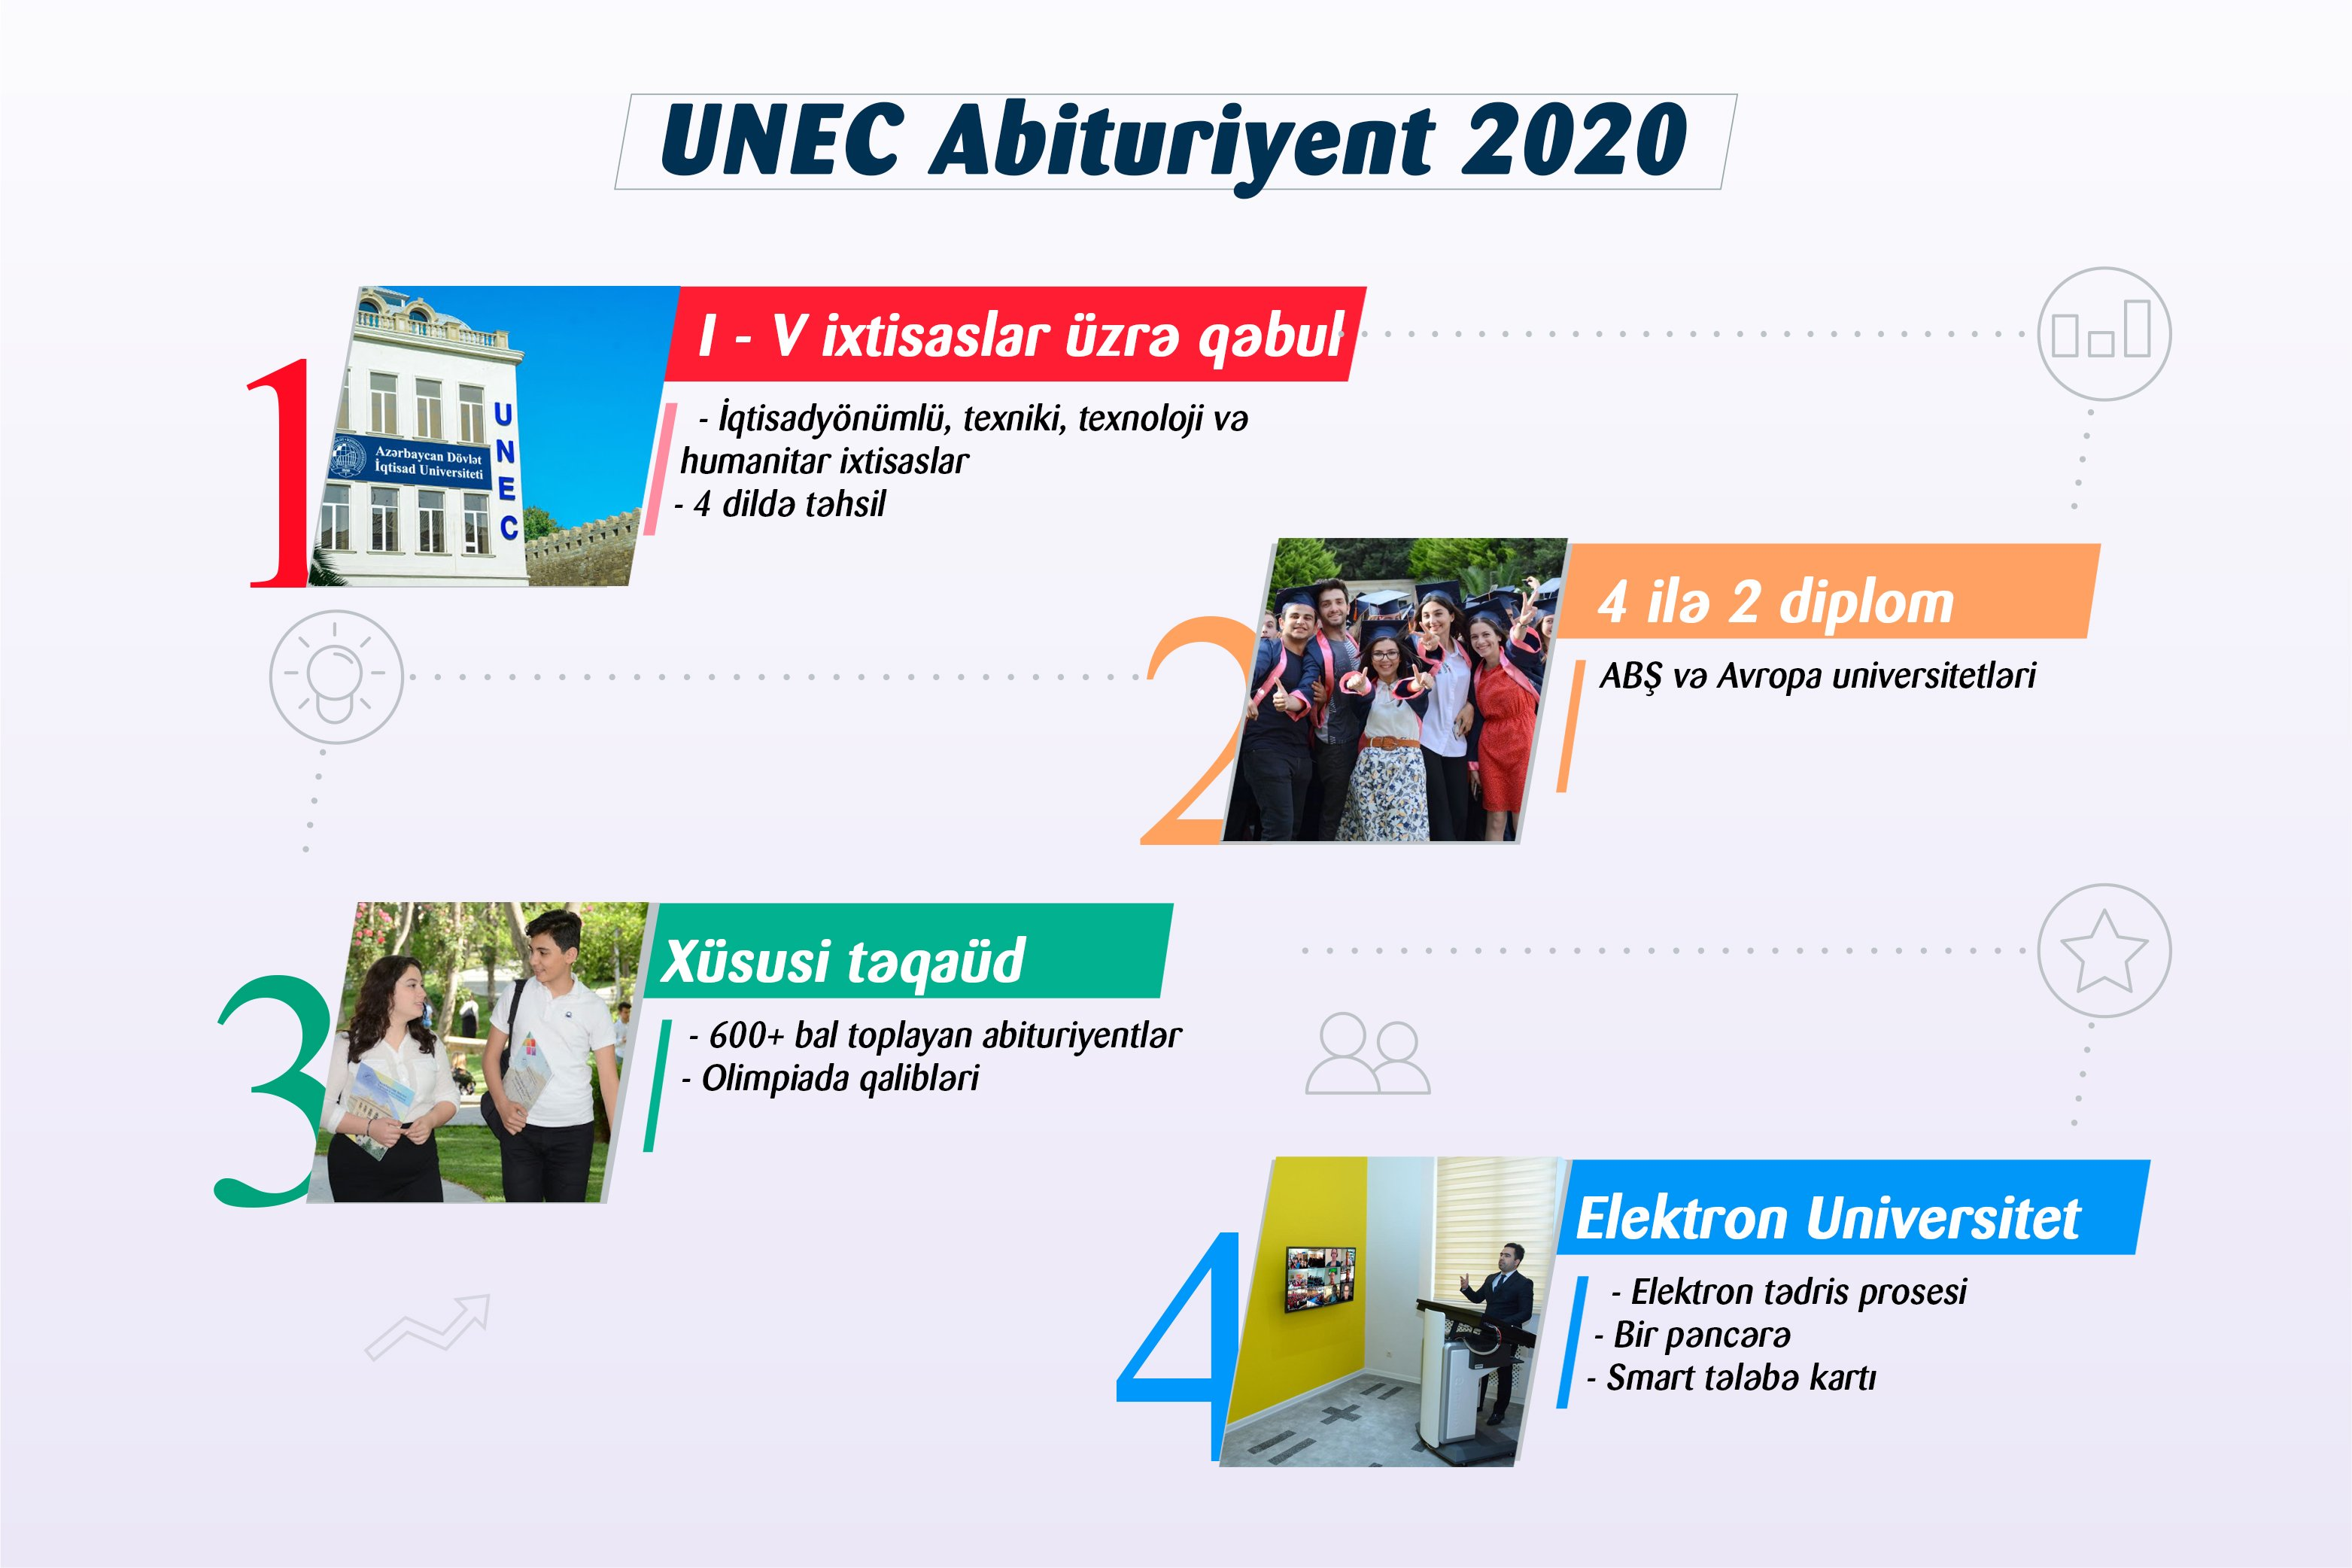 UNEC admits students on 5 specialty groups